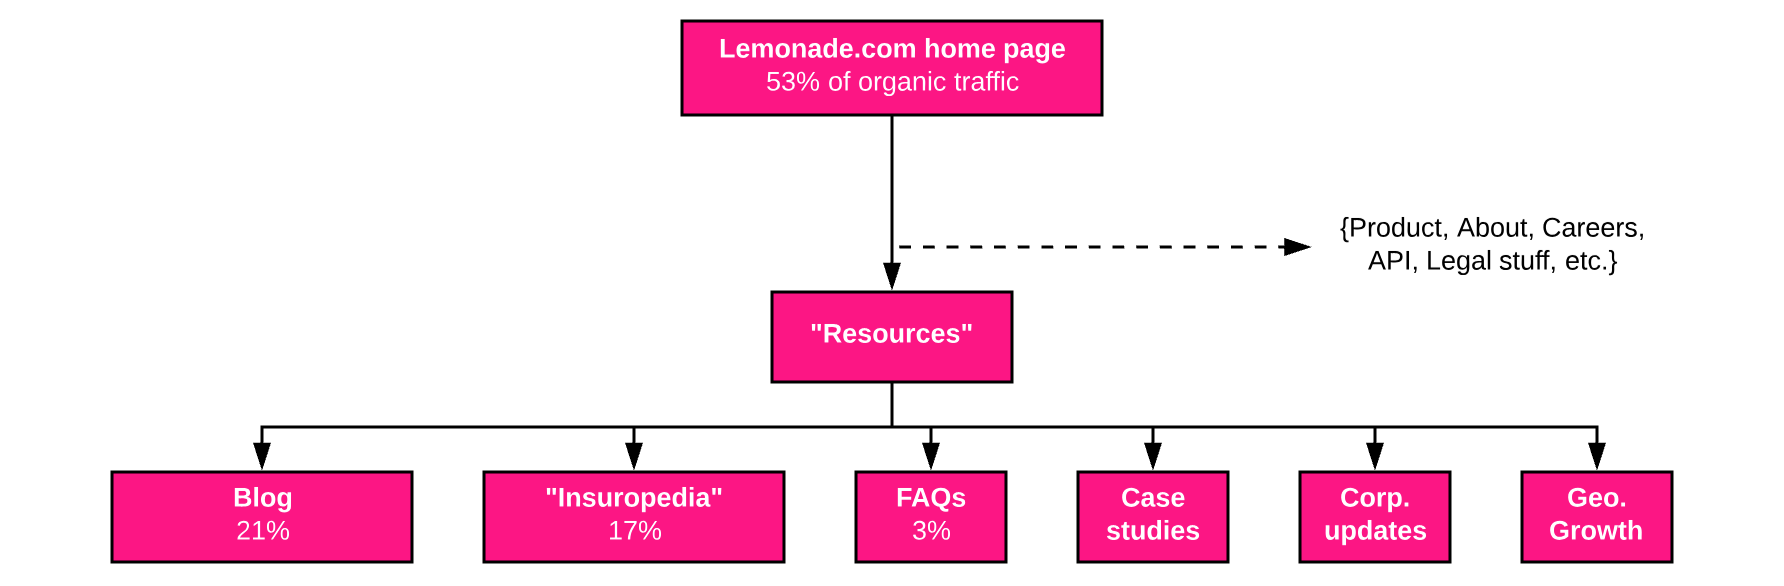 Lemonade website structure